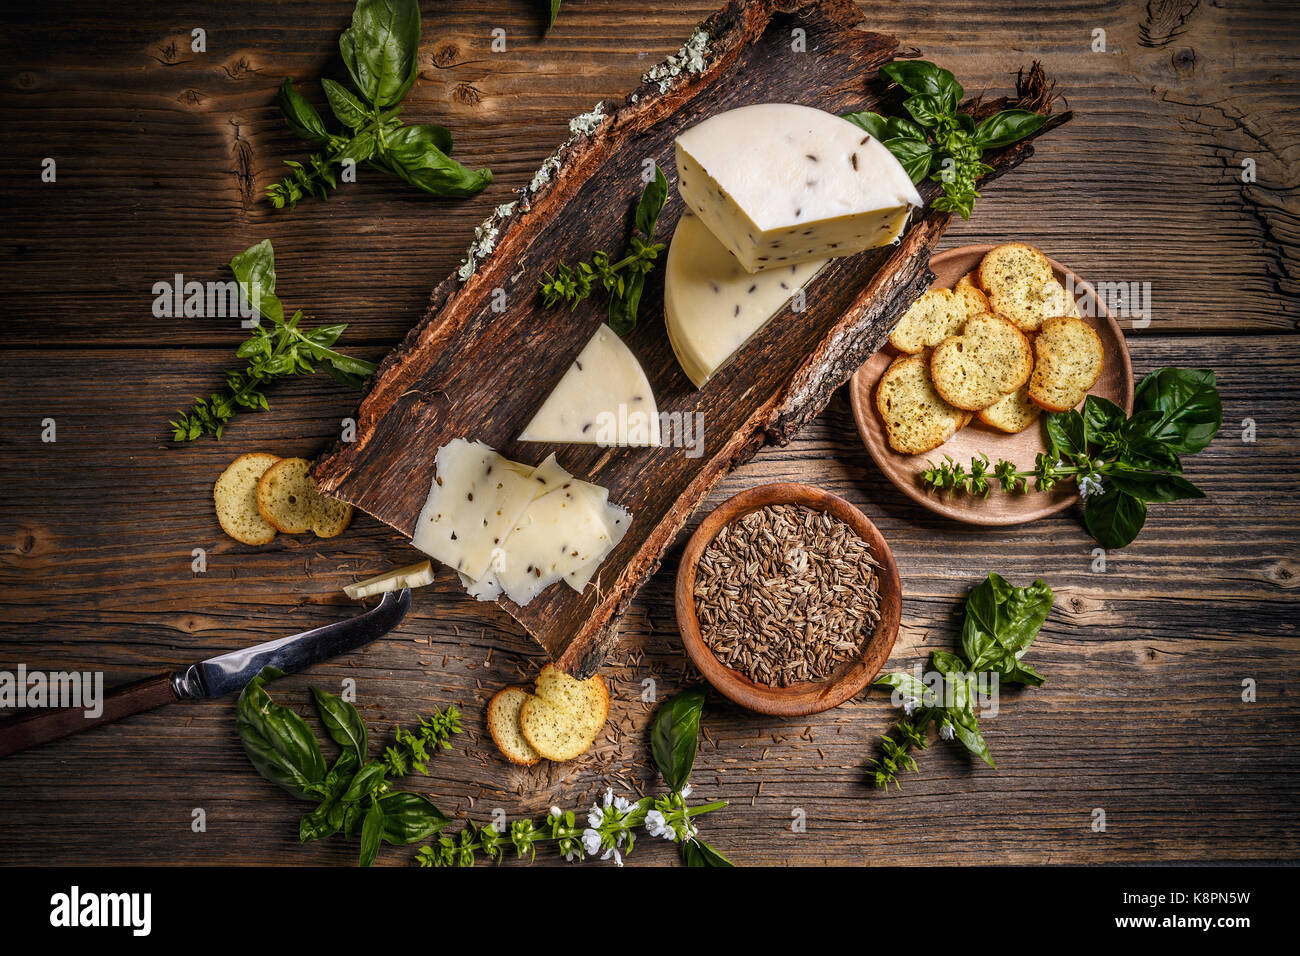 Top view of cheese wedge with caraway seeds - Stock Image